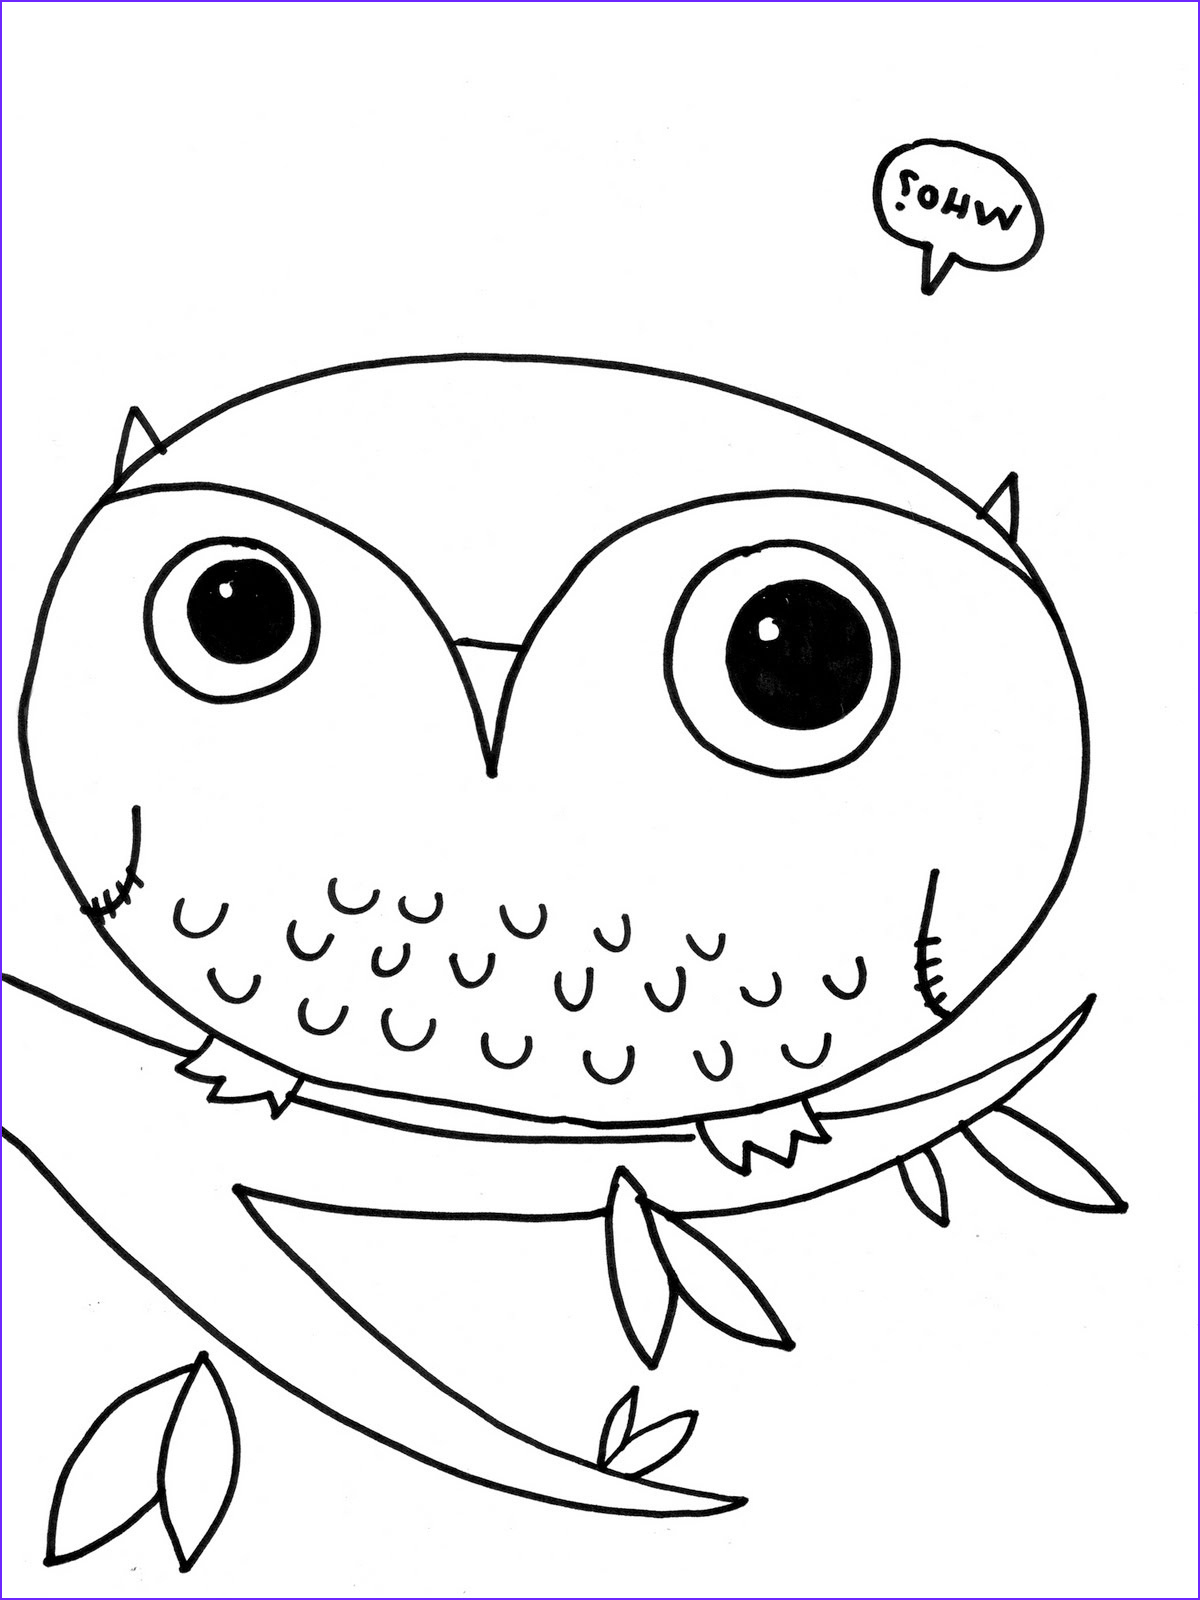 Owl Coloring Inspirational Images Free Cute Baby Owl Coloring Pages Download Free Clip Art